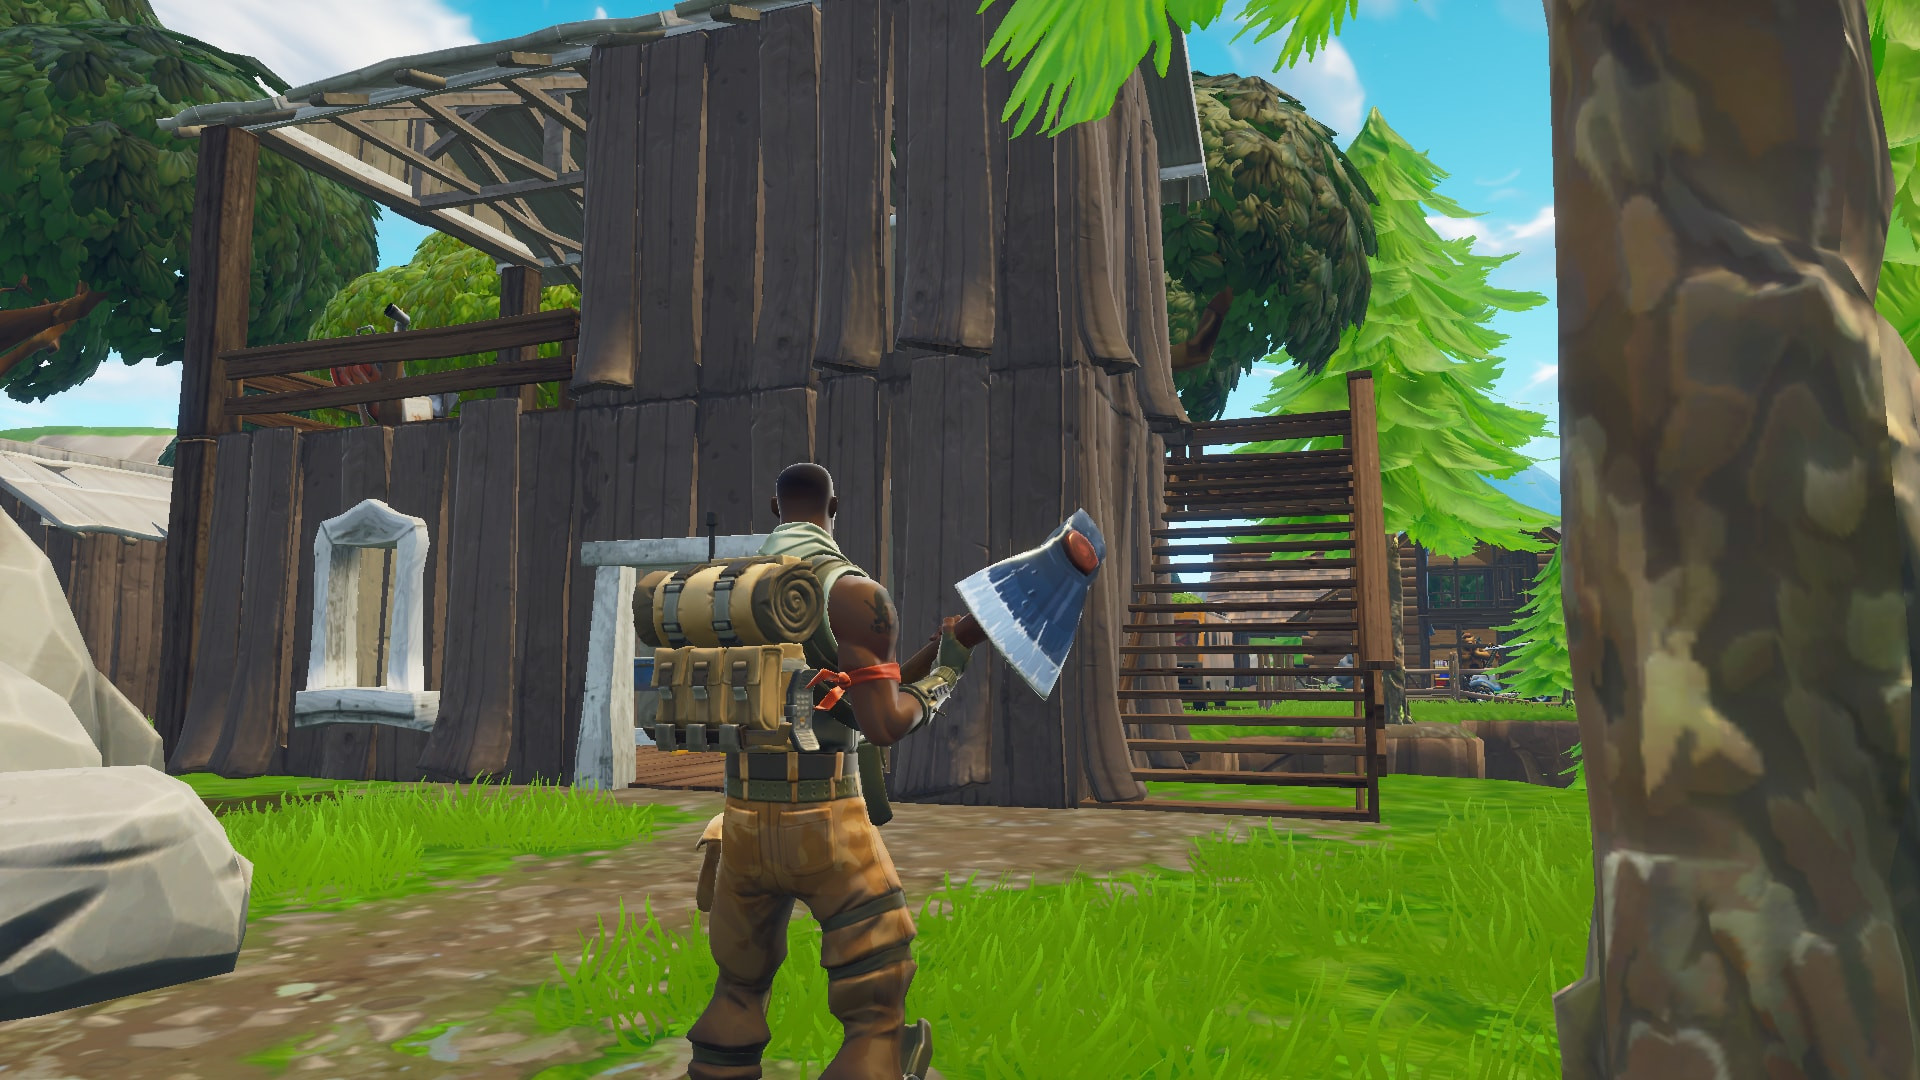 Chest Location 4 in Lonely Lodge | Fortnite -zilliongamer your game guide